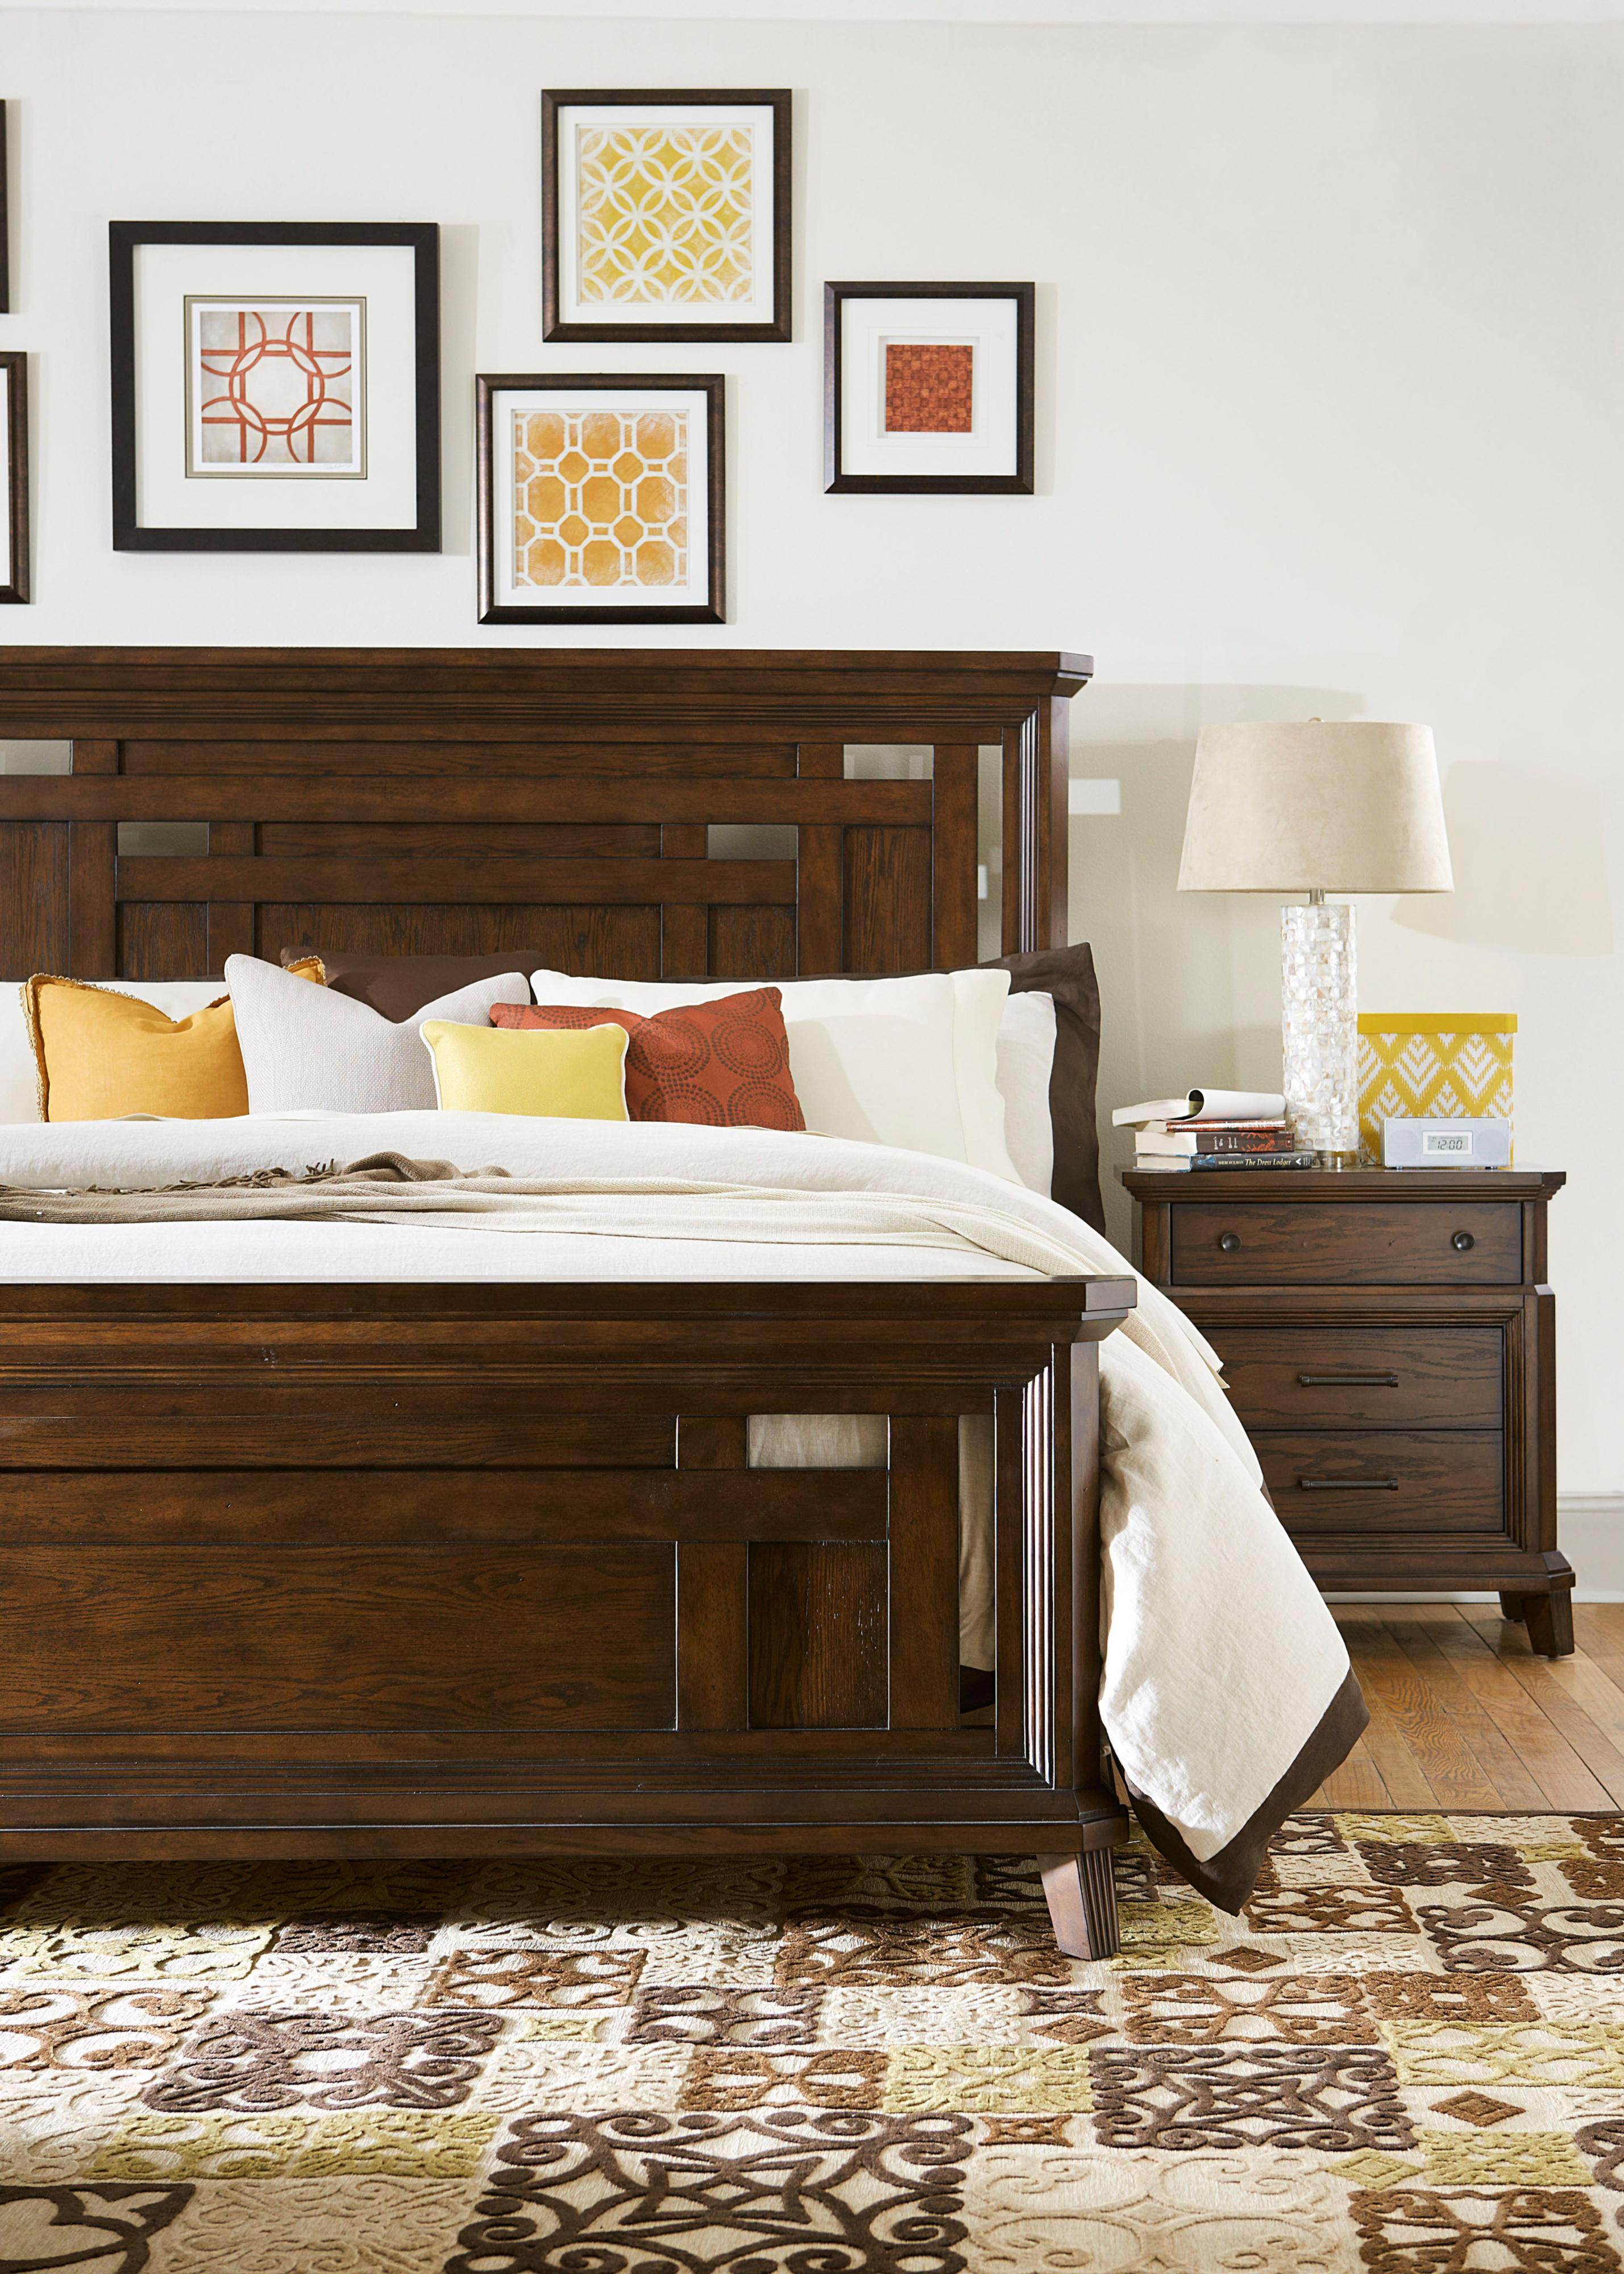 Broyhill Furniture Estes Park King Bedroom Group - Item Number: 4364 K Bedroom Group 3